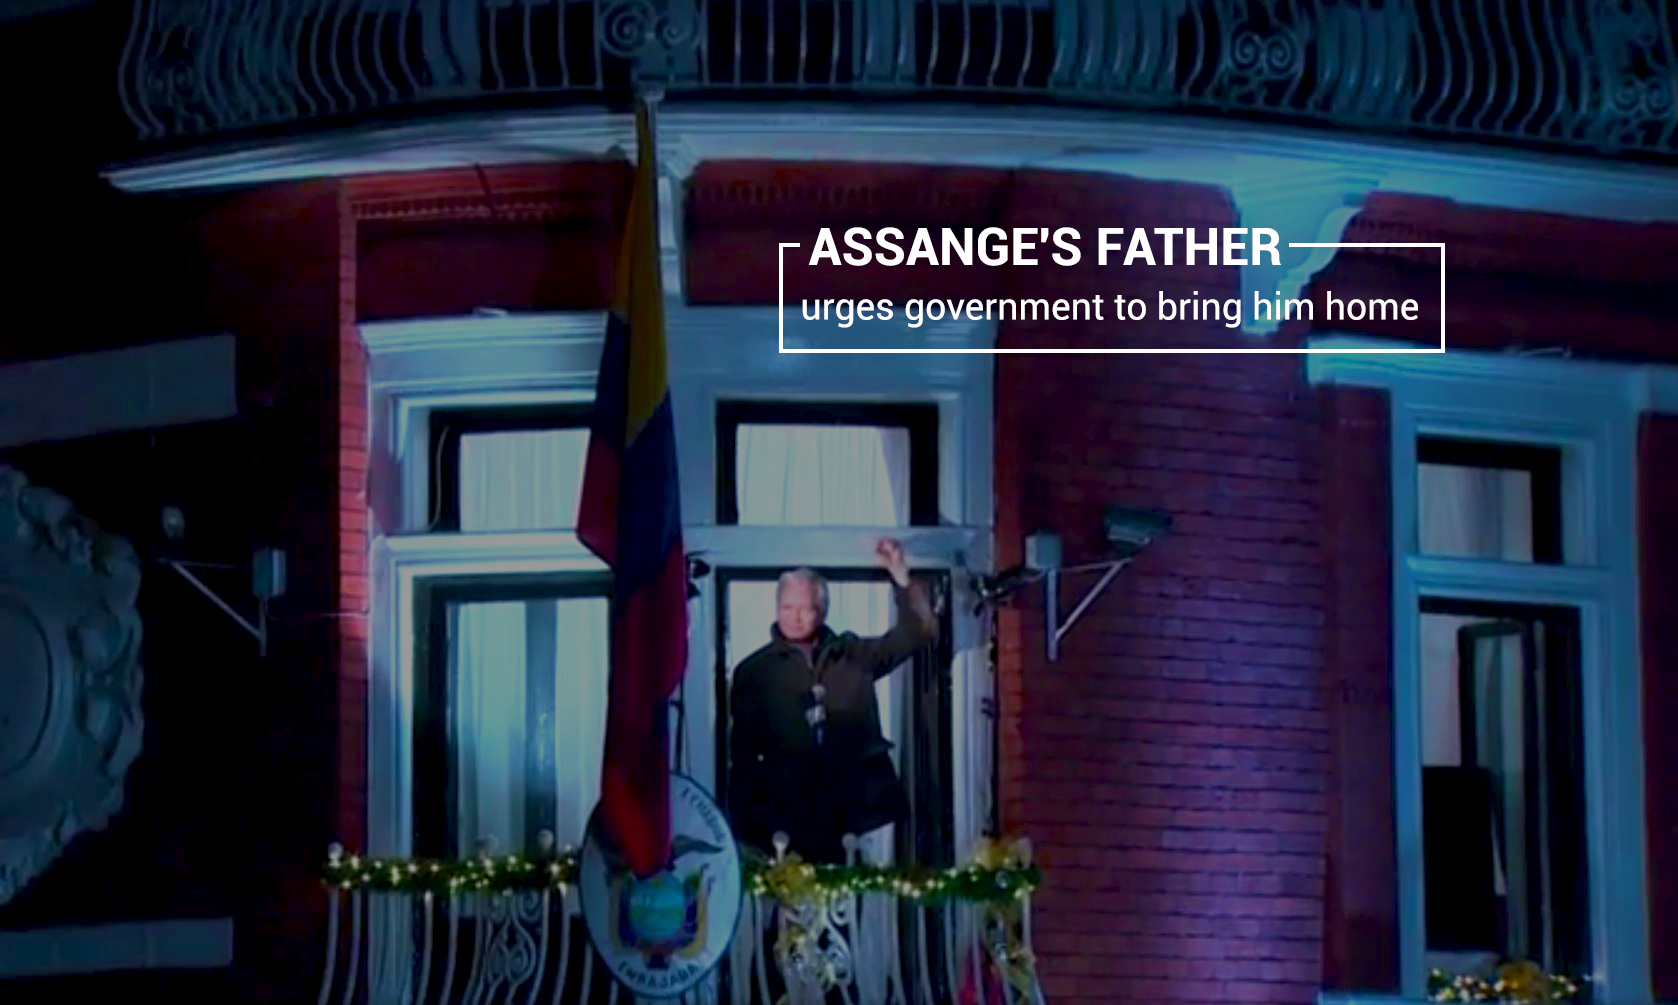 Assange's Father Emphasizes Govt. of Australia to Bring his Son Home